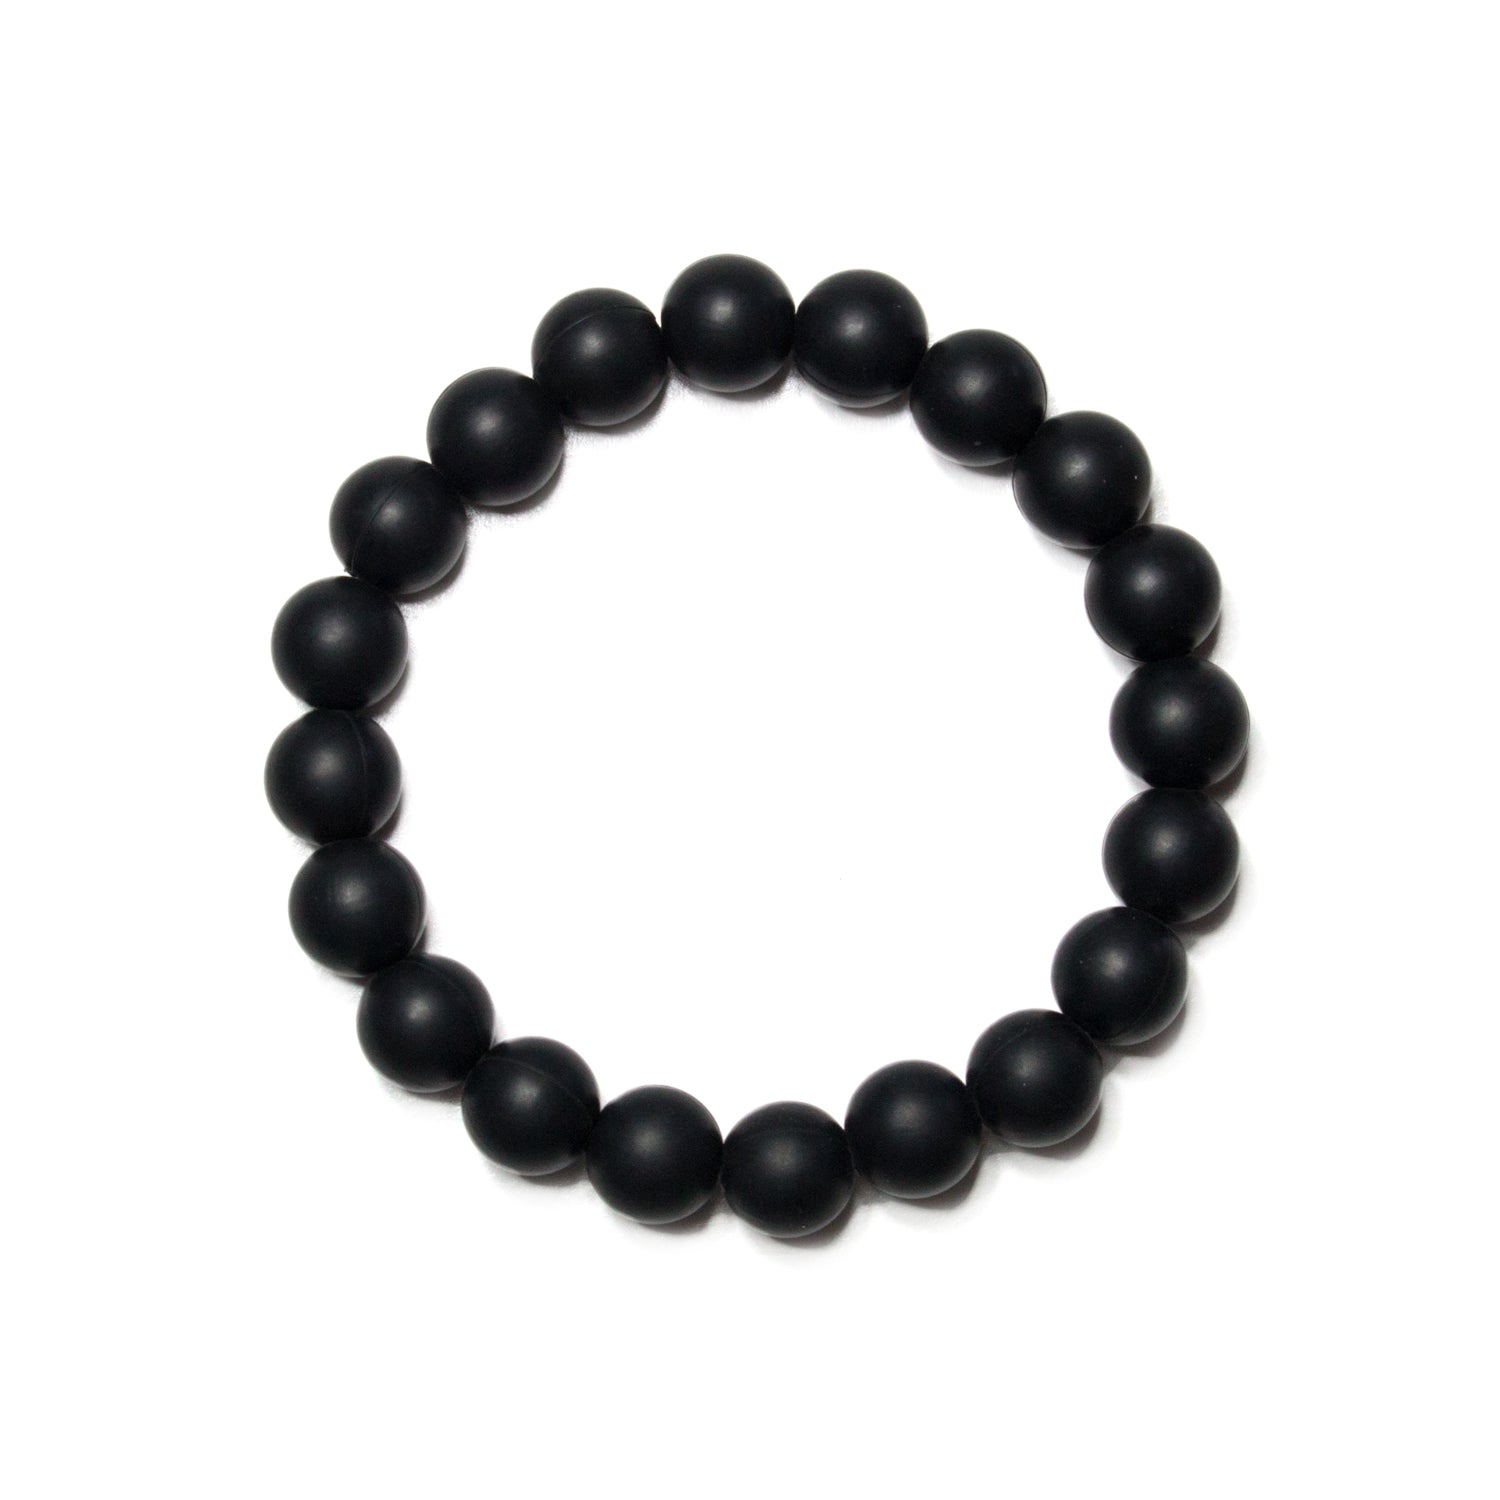 Michelle Black Silicone Teething Jewelry